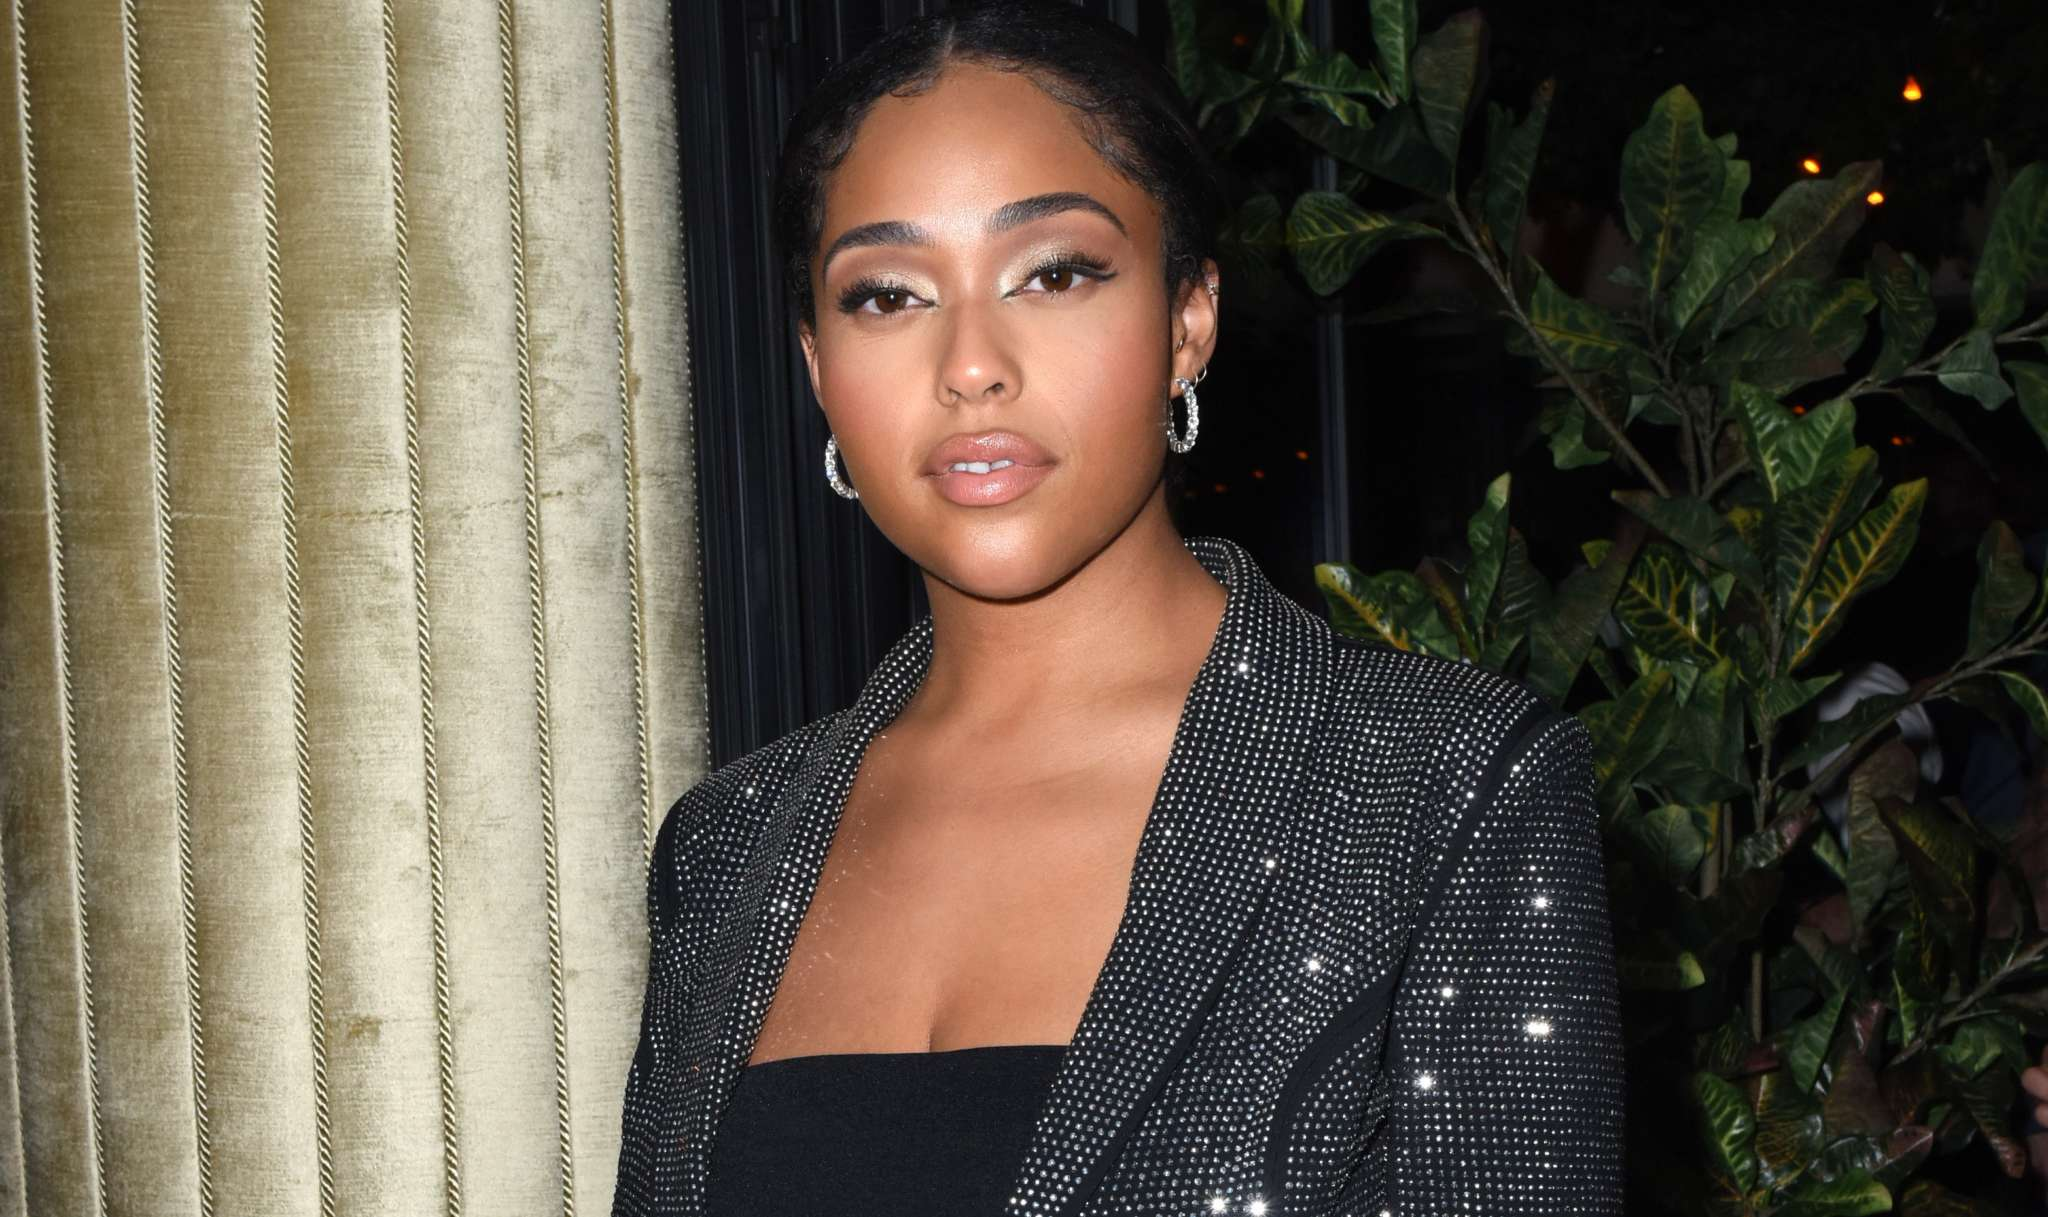 jordyn-woods-says-shes-happy-her-scandal-with-tristan-thompson-happened-and-heres-why